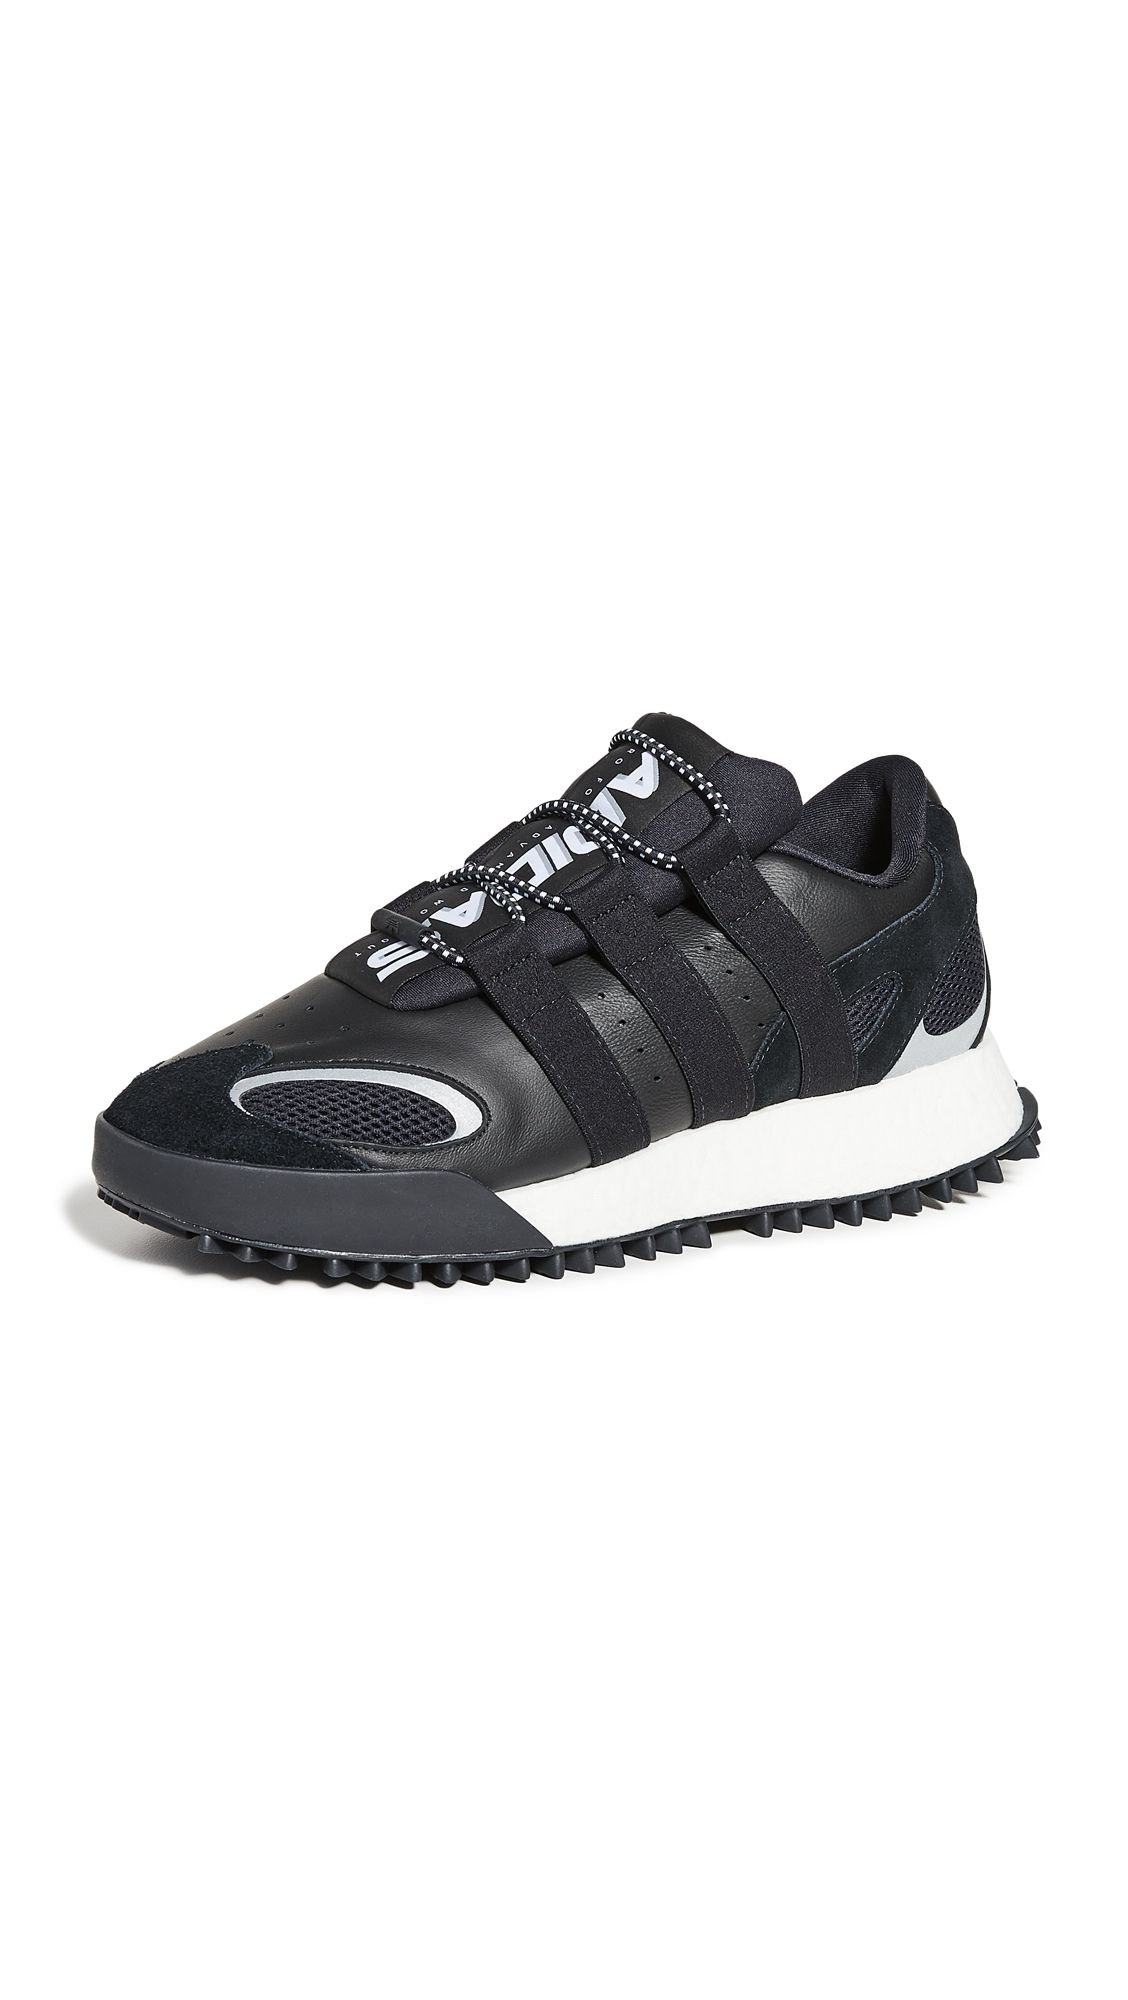 Abundante Pase para saber par  Adidas Originals By Alexander Wang Aw Wang Body Run Leather & Mesh Sneakers  In Core Black | ModeSens | Adidas originals, Sneakers, Alexander wang